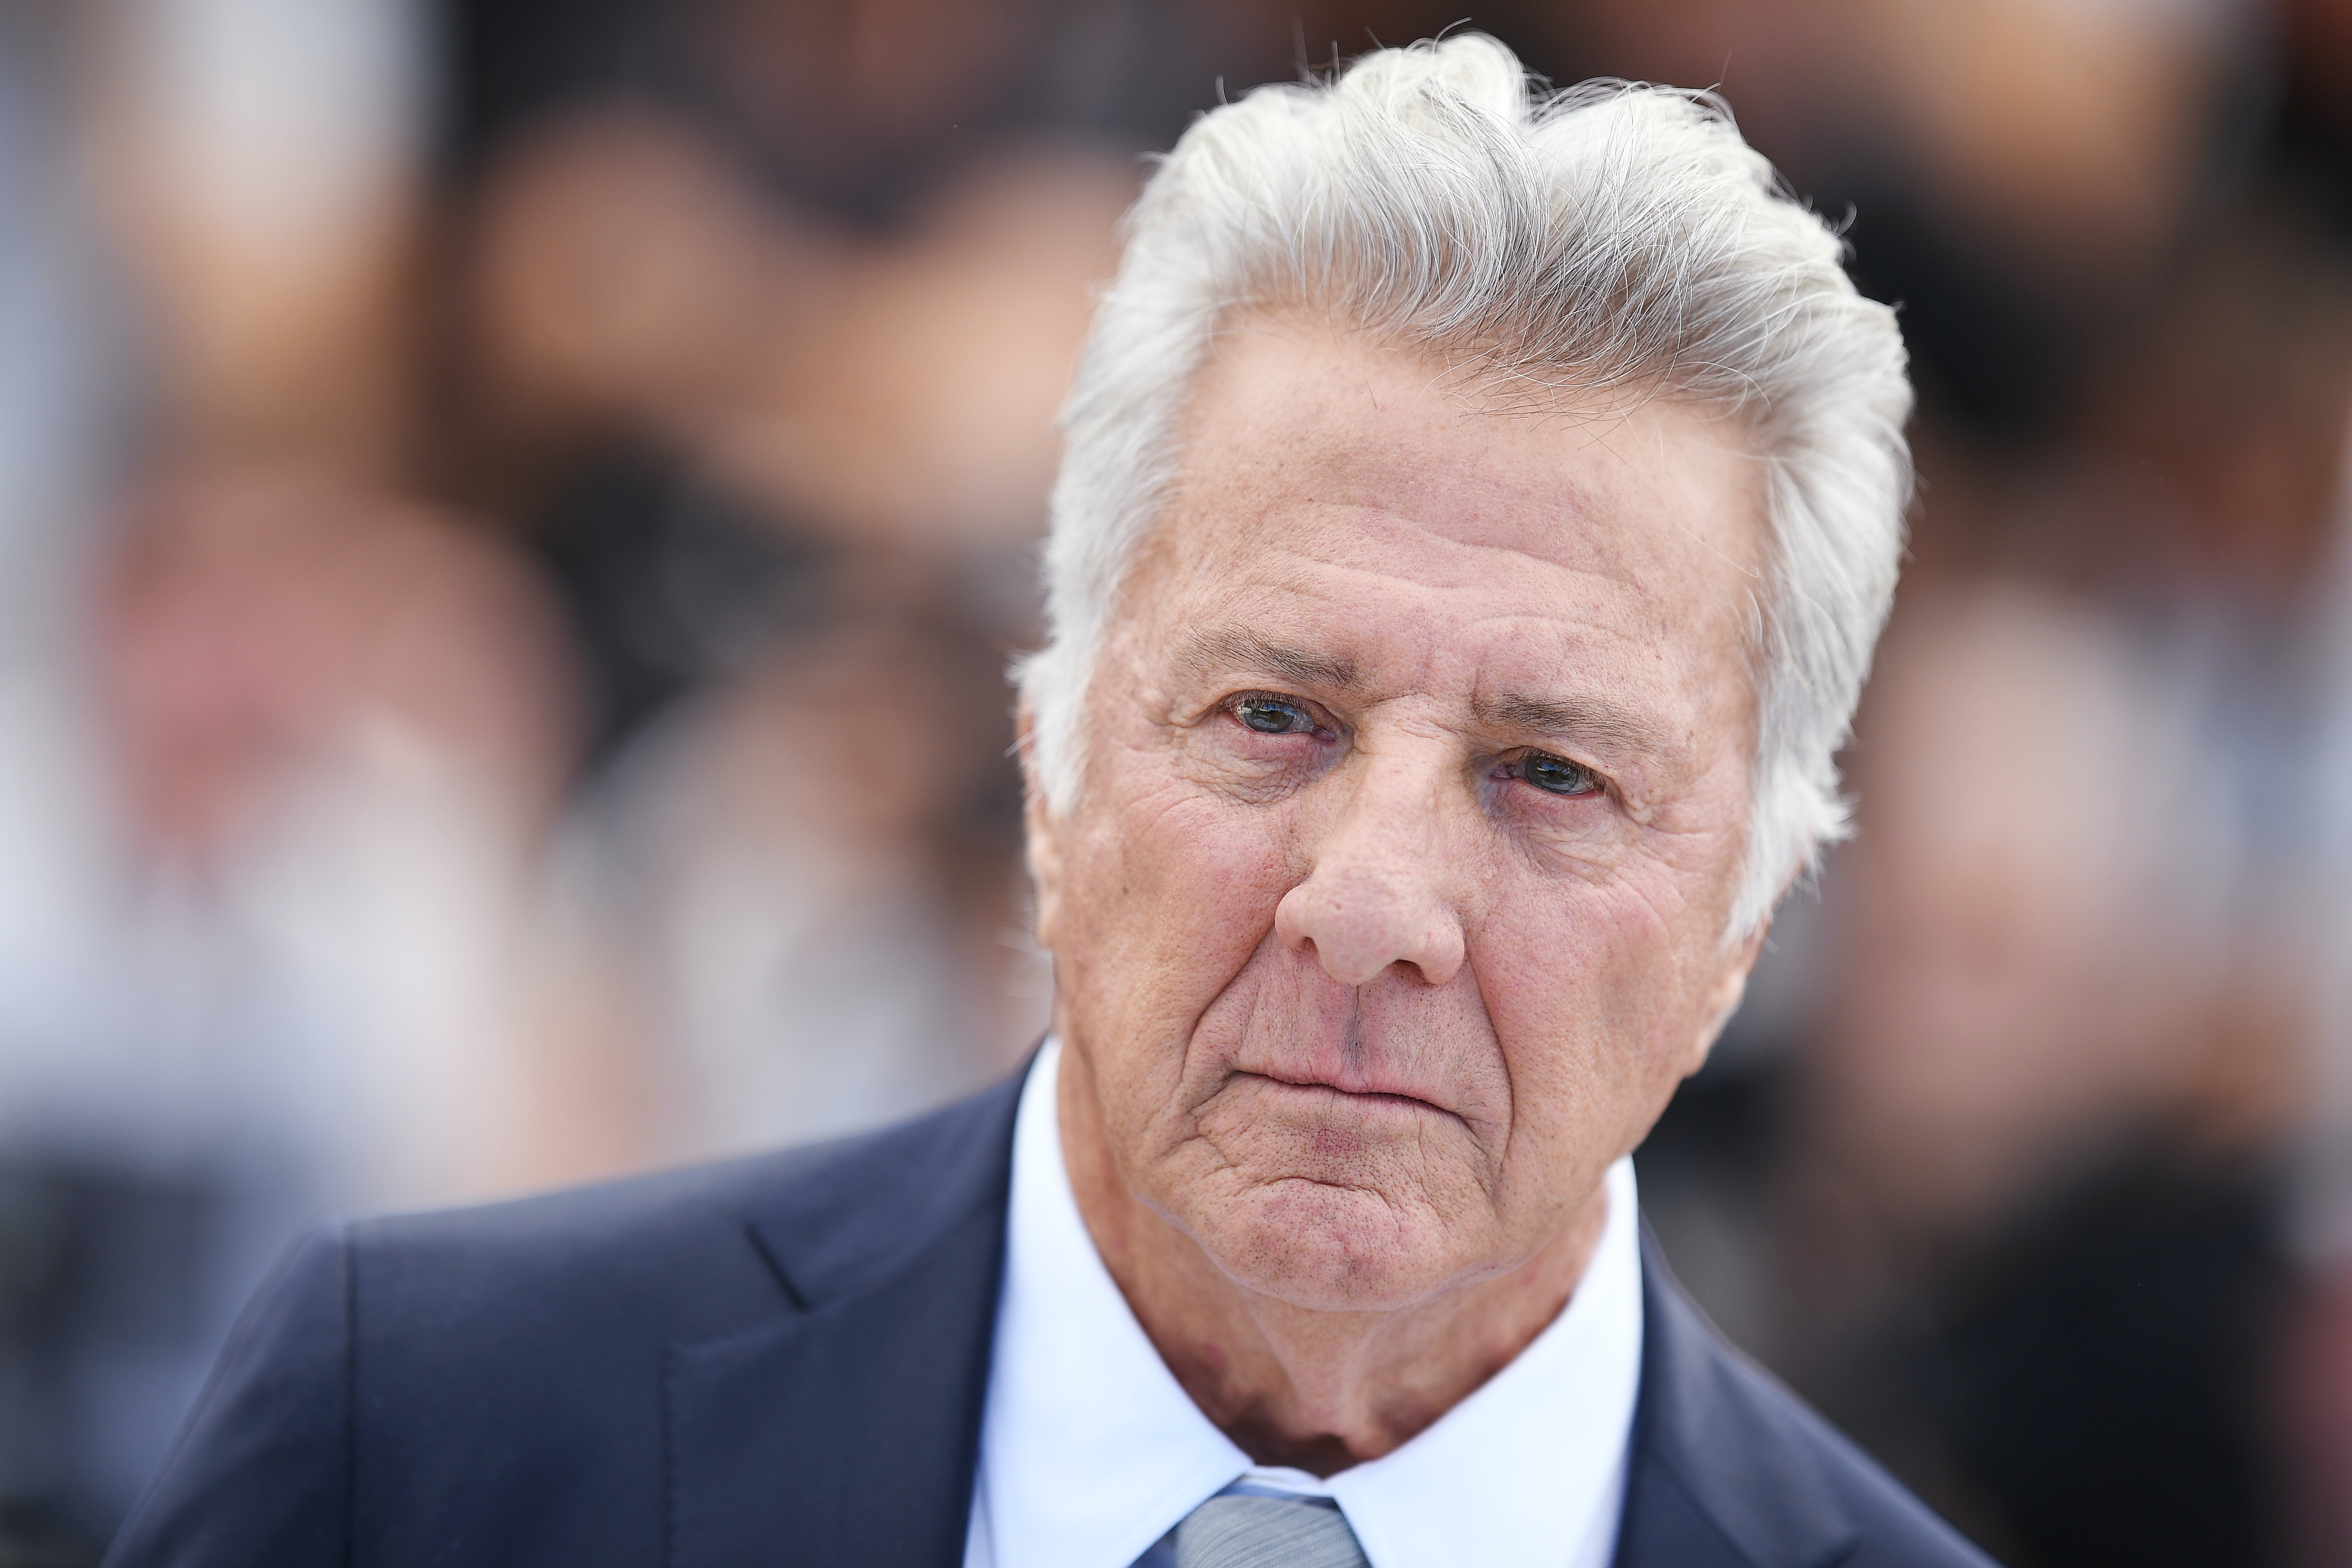 More women come forward with sexual misconduct allegations against Dustin Hoffman